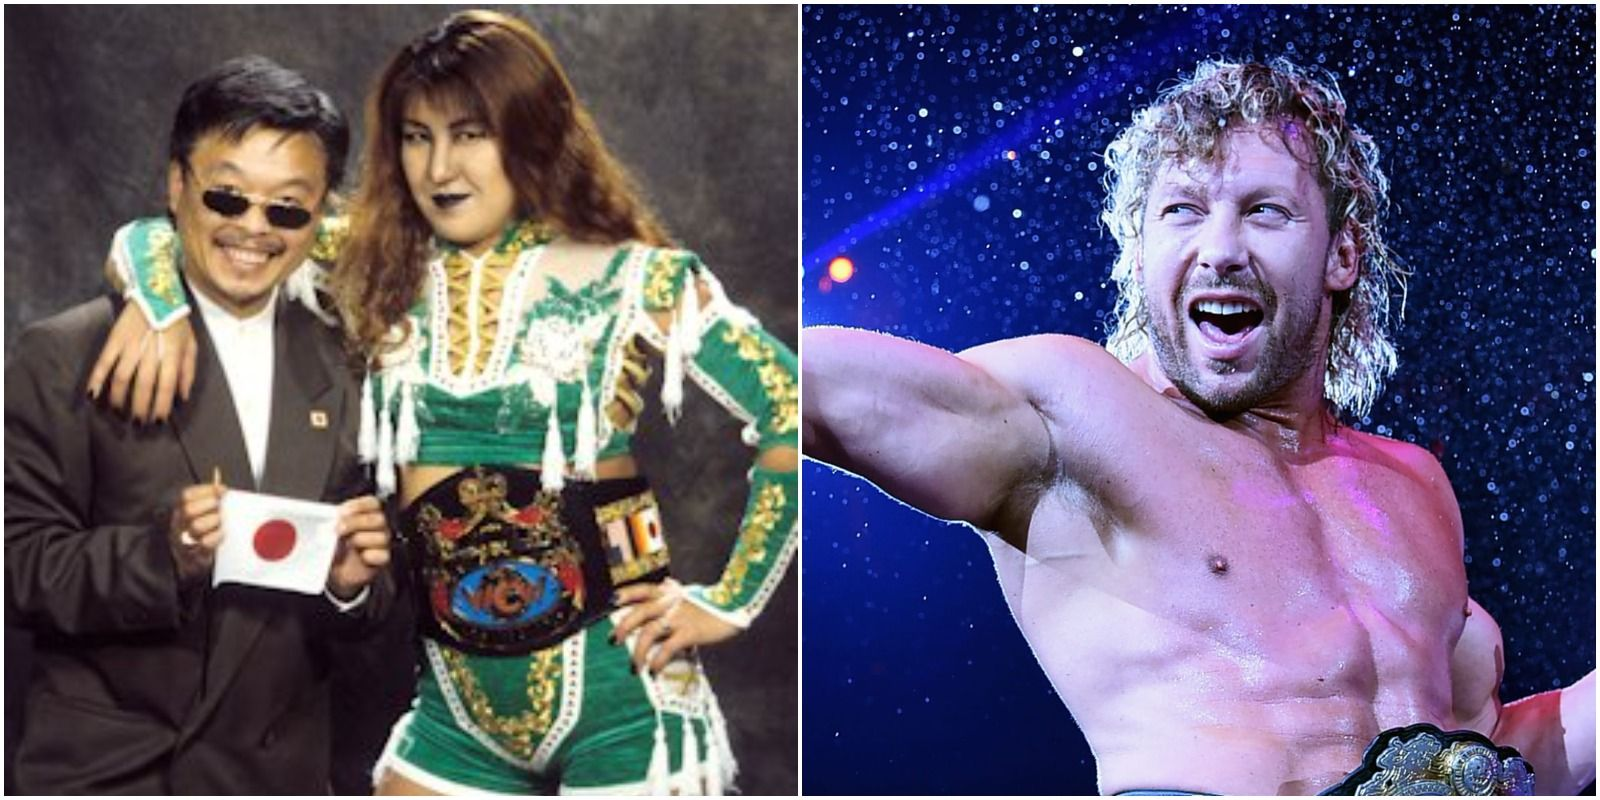 Mount Rushmore: The 10 Best Wrestlers Who Never Worked In WWE